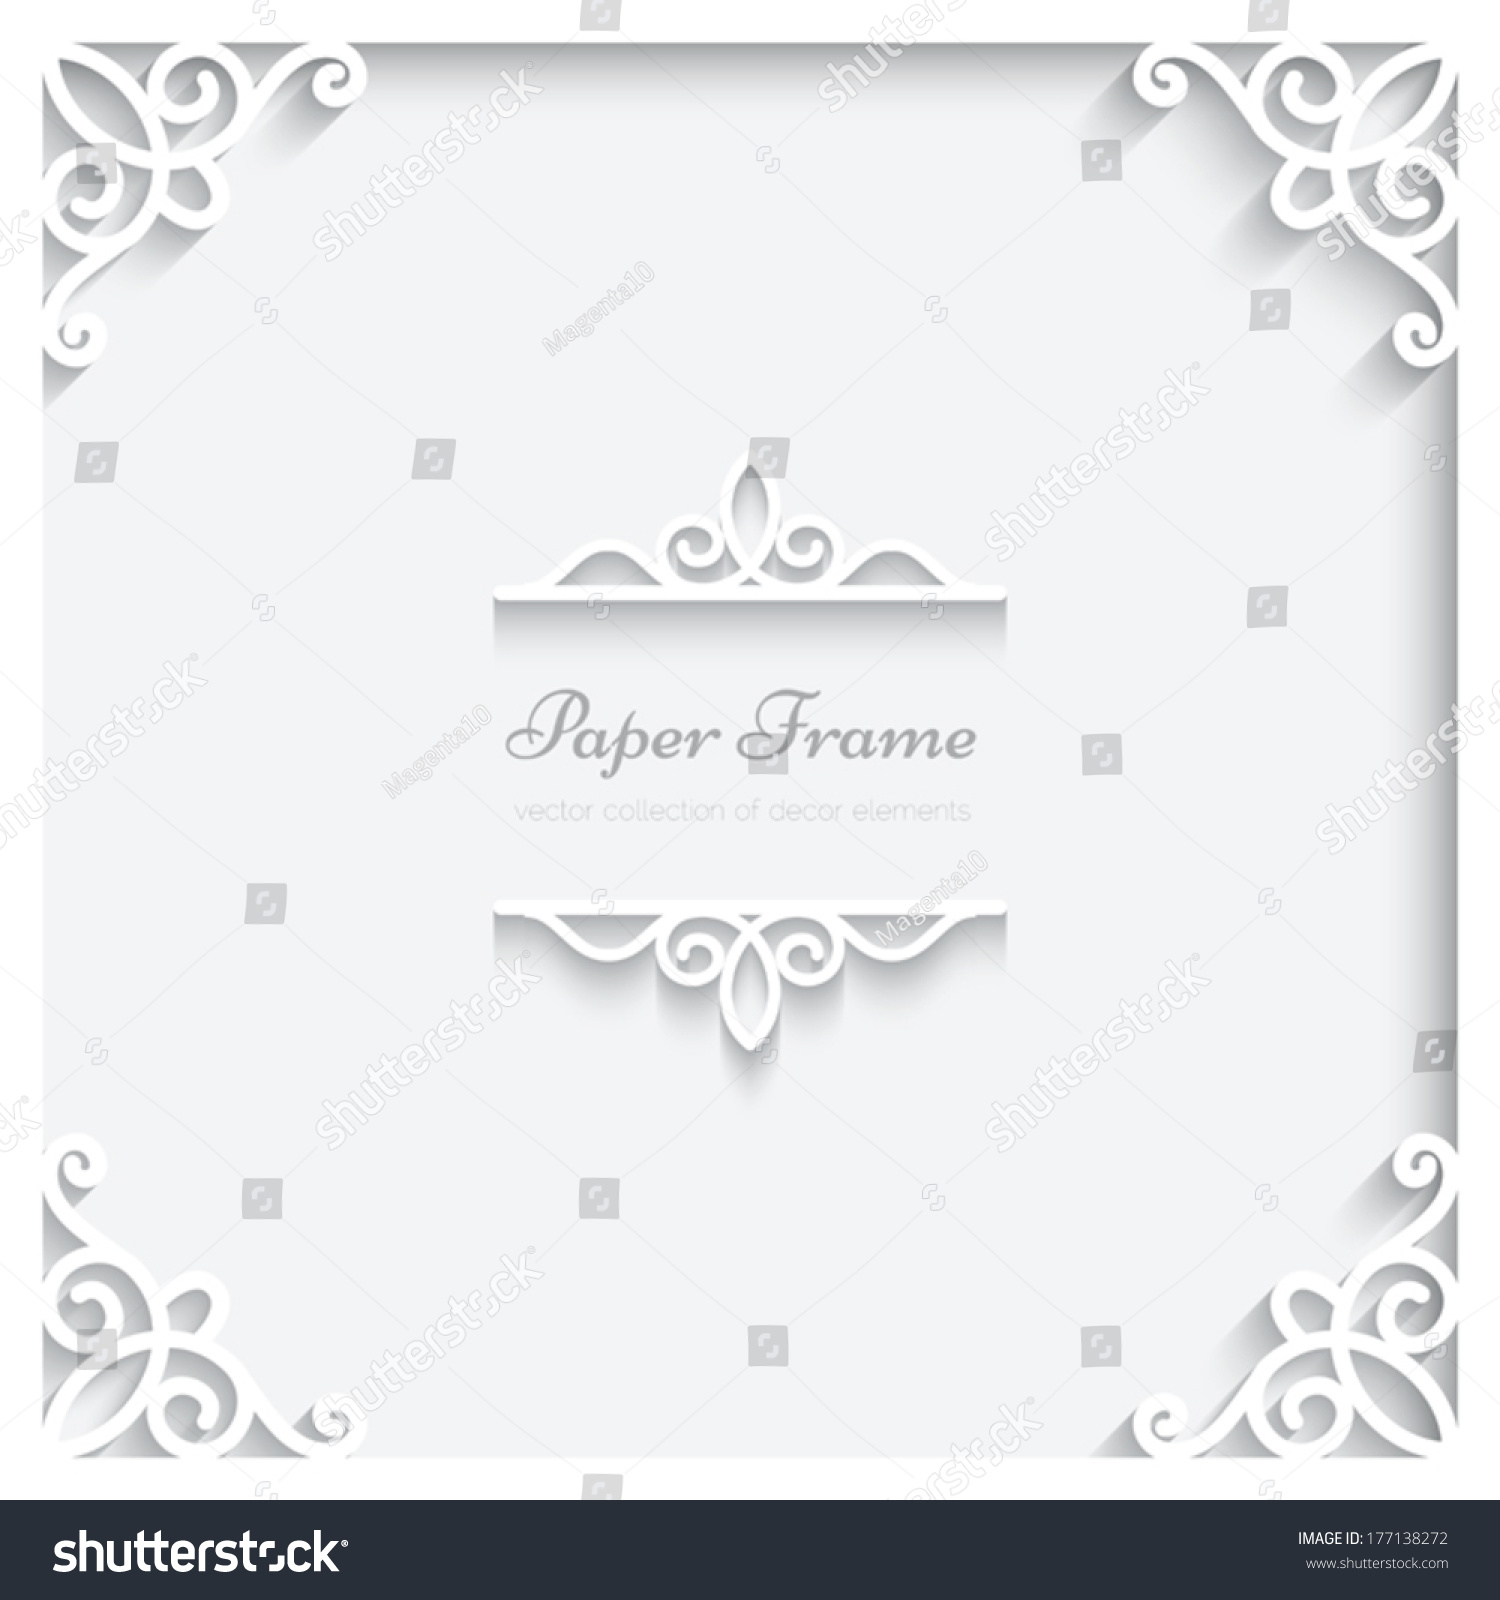 abstract paper frame with shadow divider header vector ornamental background eps10